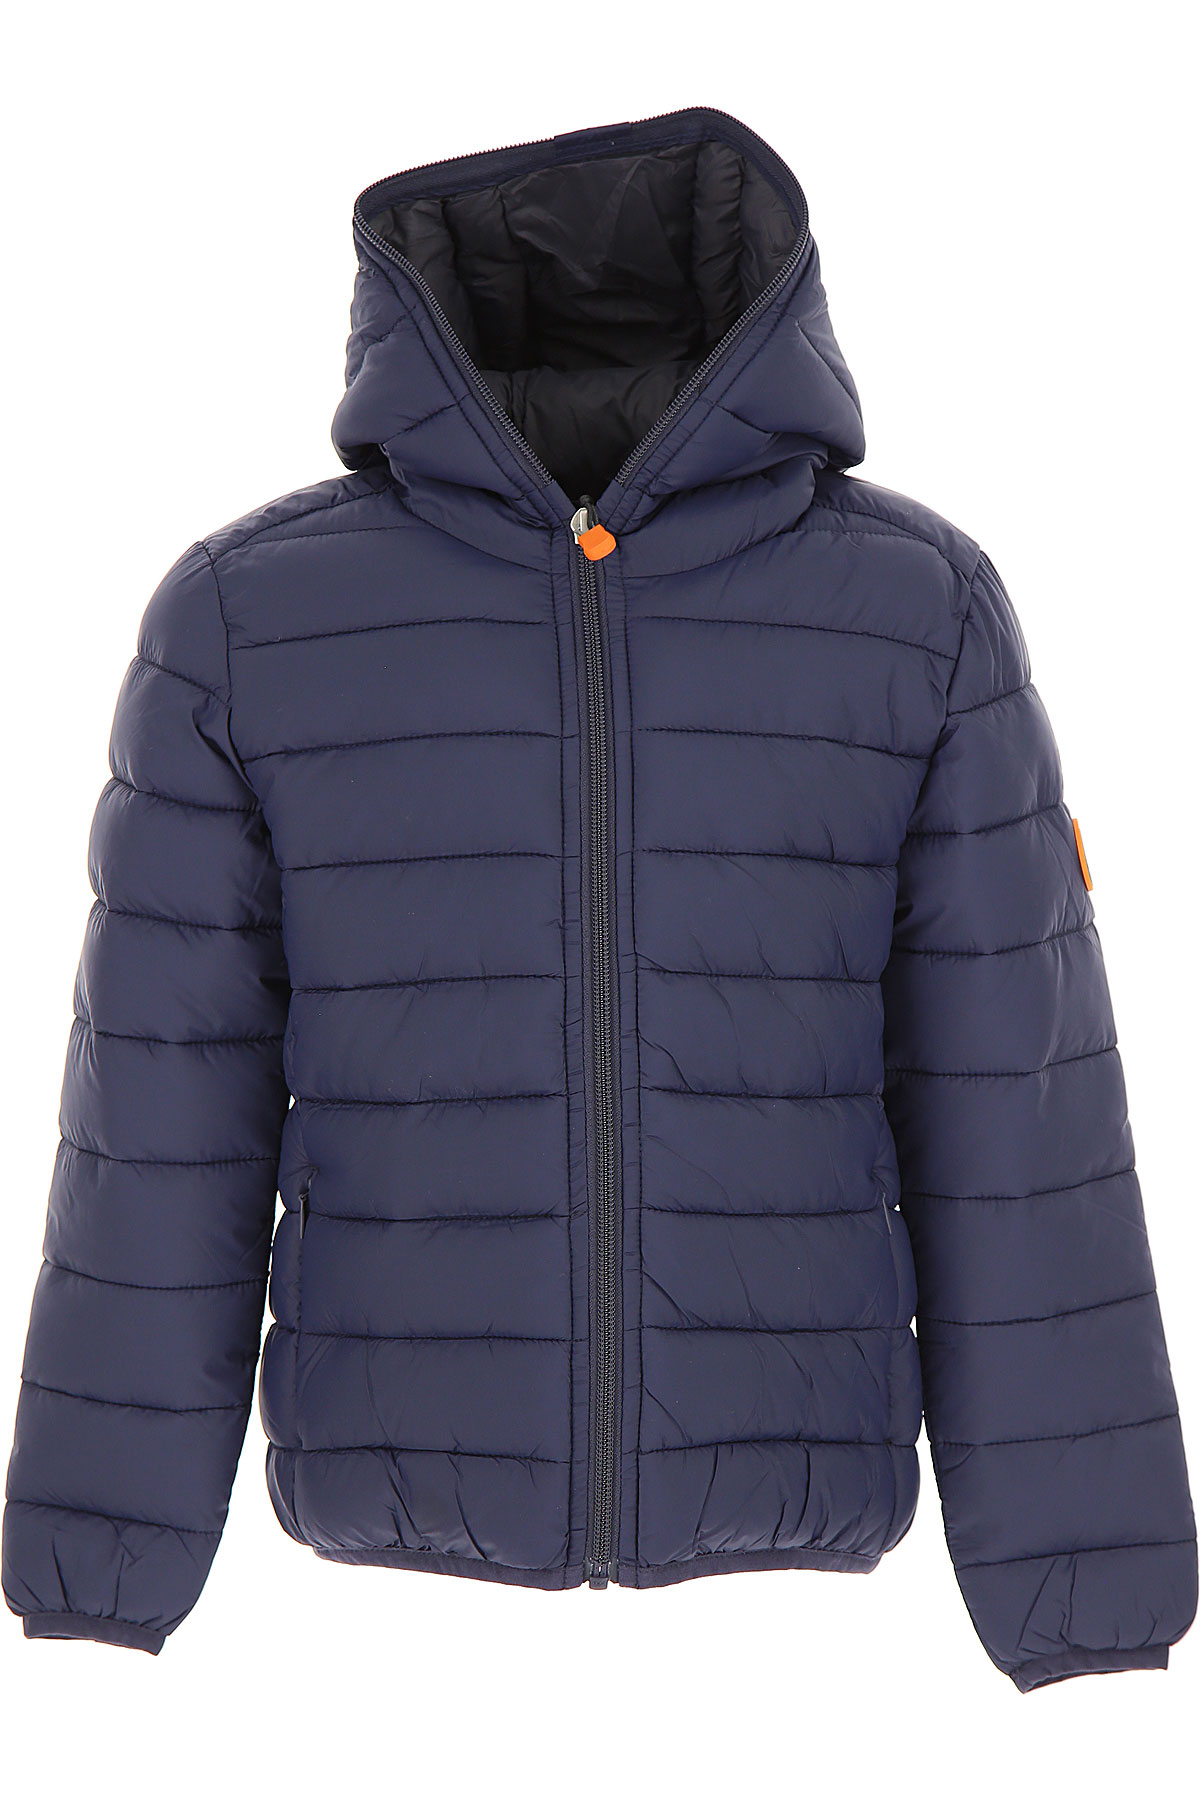 Save the Duck Boys Down Jacket for Kids, Puffer Ski Jacket On Sale, Blue Navy, Nylon, 2019, 10Y 6Y